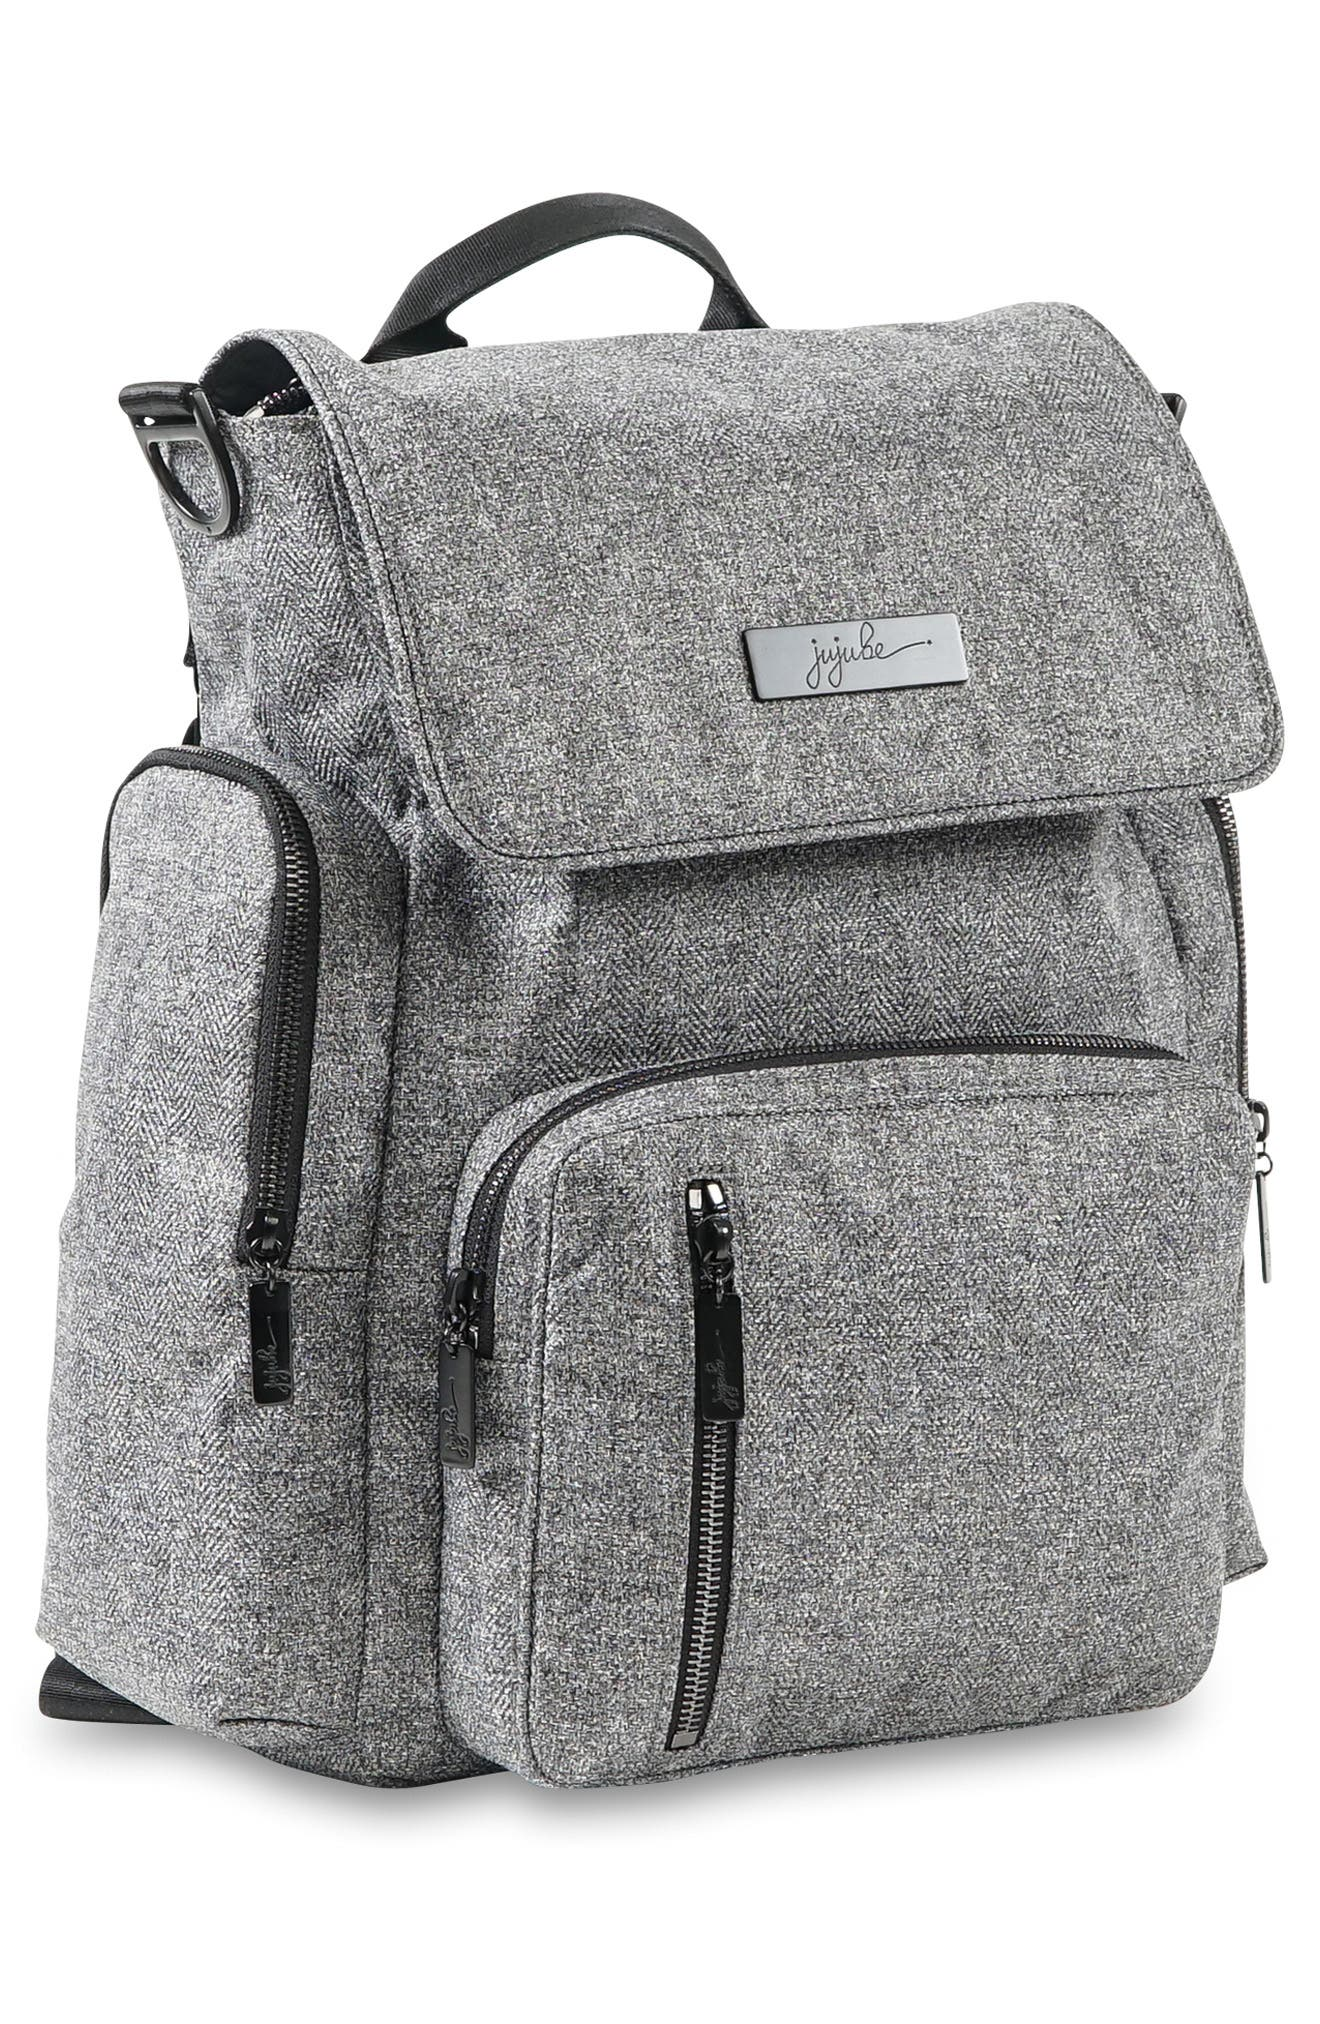 Onyx Be Sporty Diaper Backpack,                             Alternate thumbnail 5, color,                             035